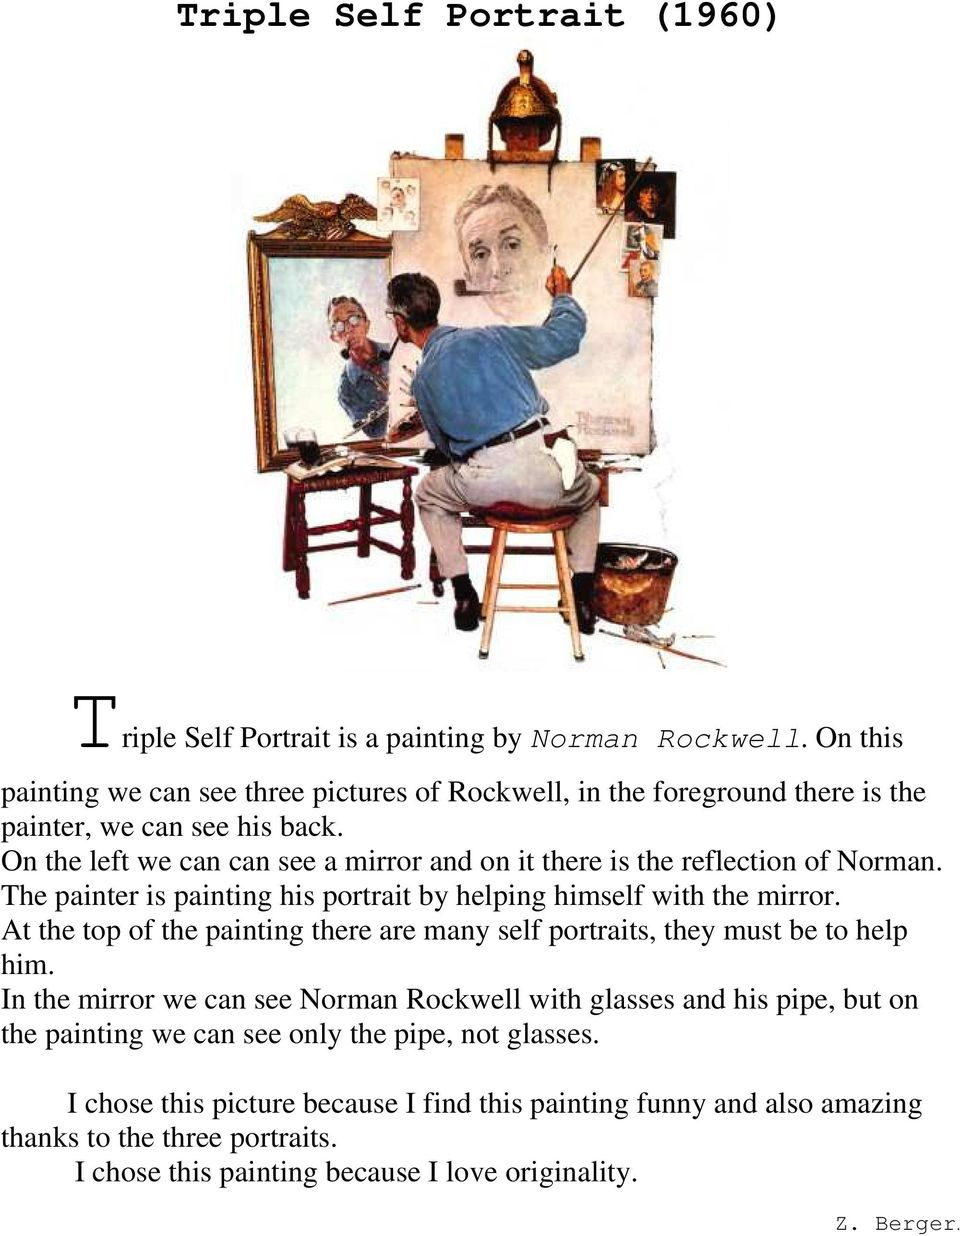 On the left we can can see a mirror and on it there is the reflection of Norman. The painter is painting his portrait by helping himself with the mirror.